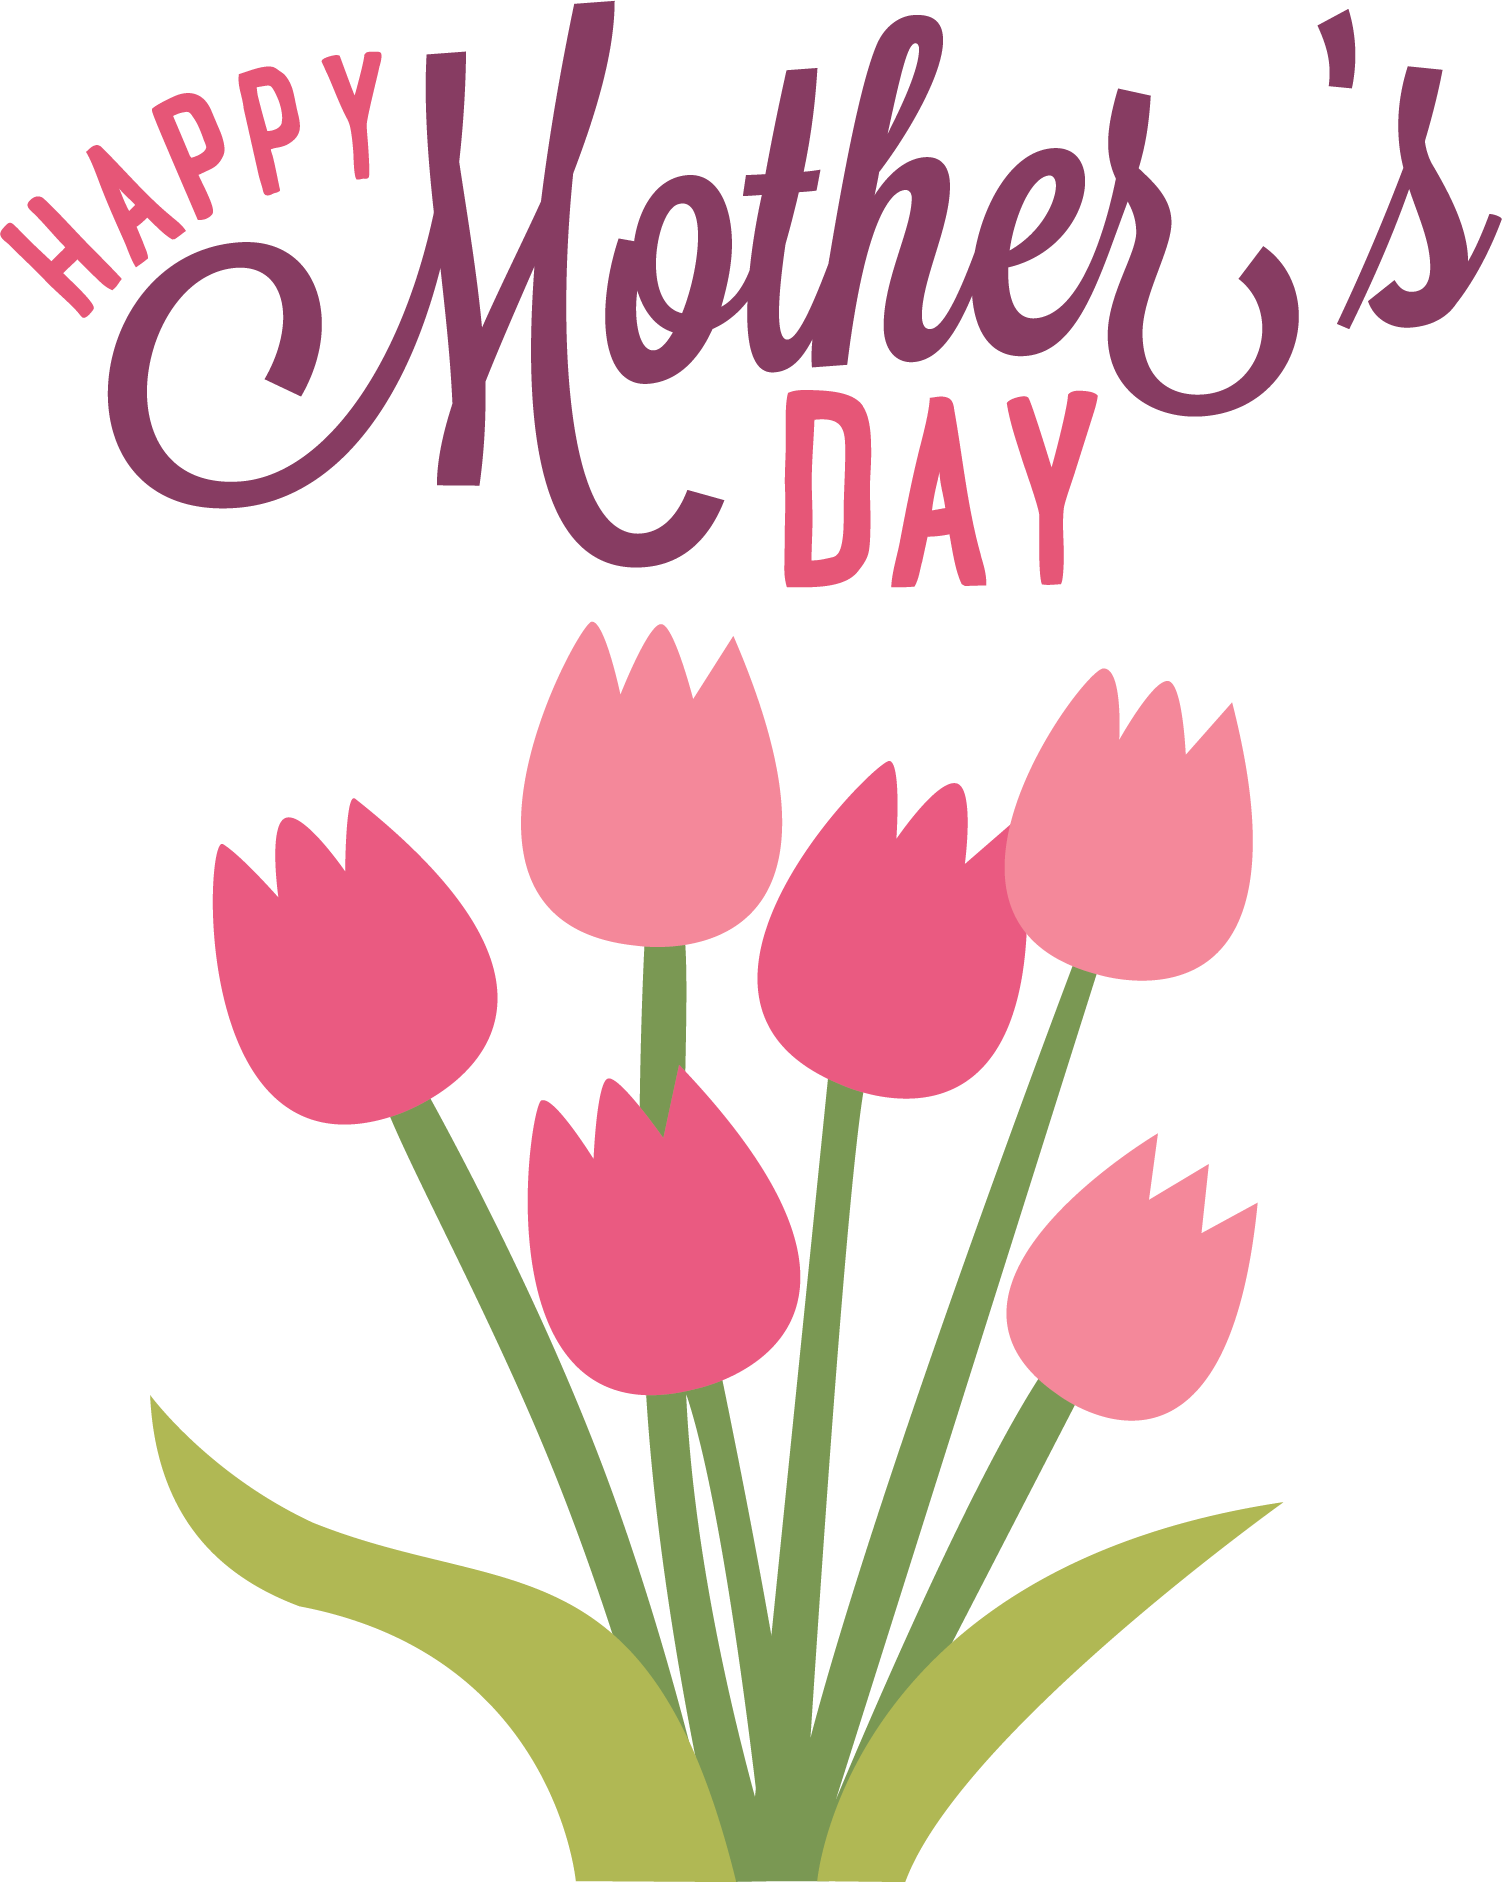 Happy Mothers Day Clipart · holidays · mothers day